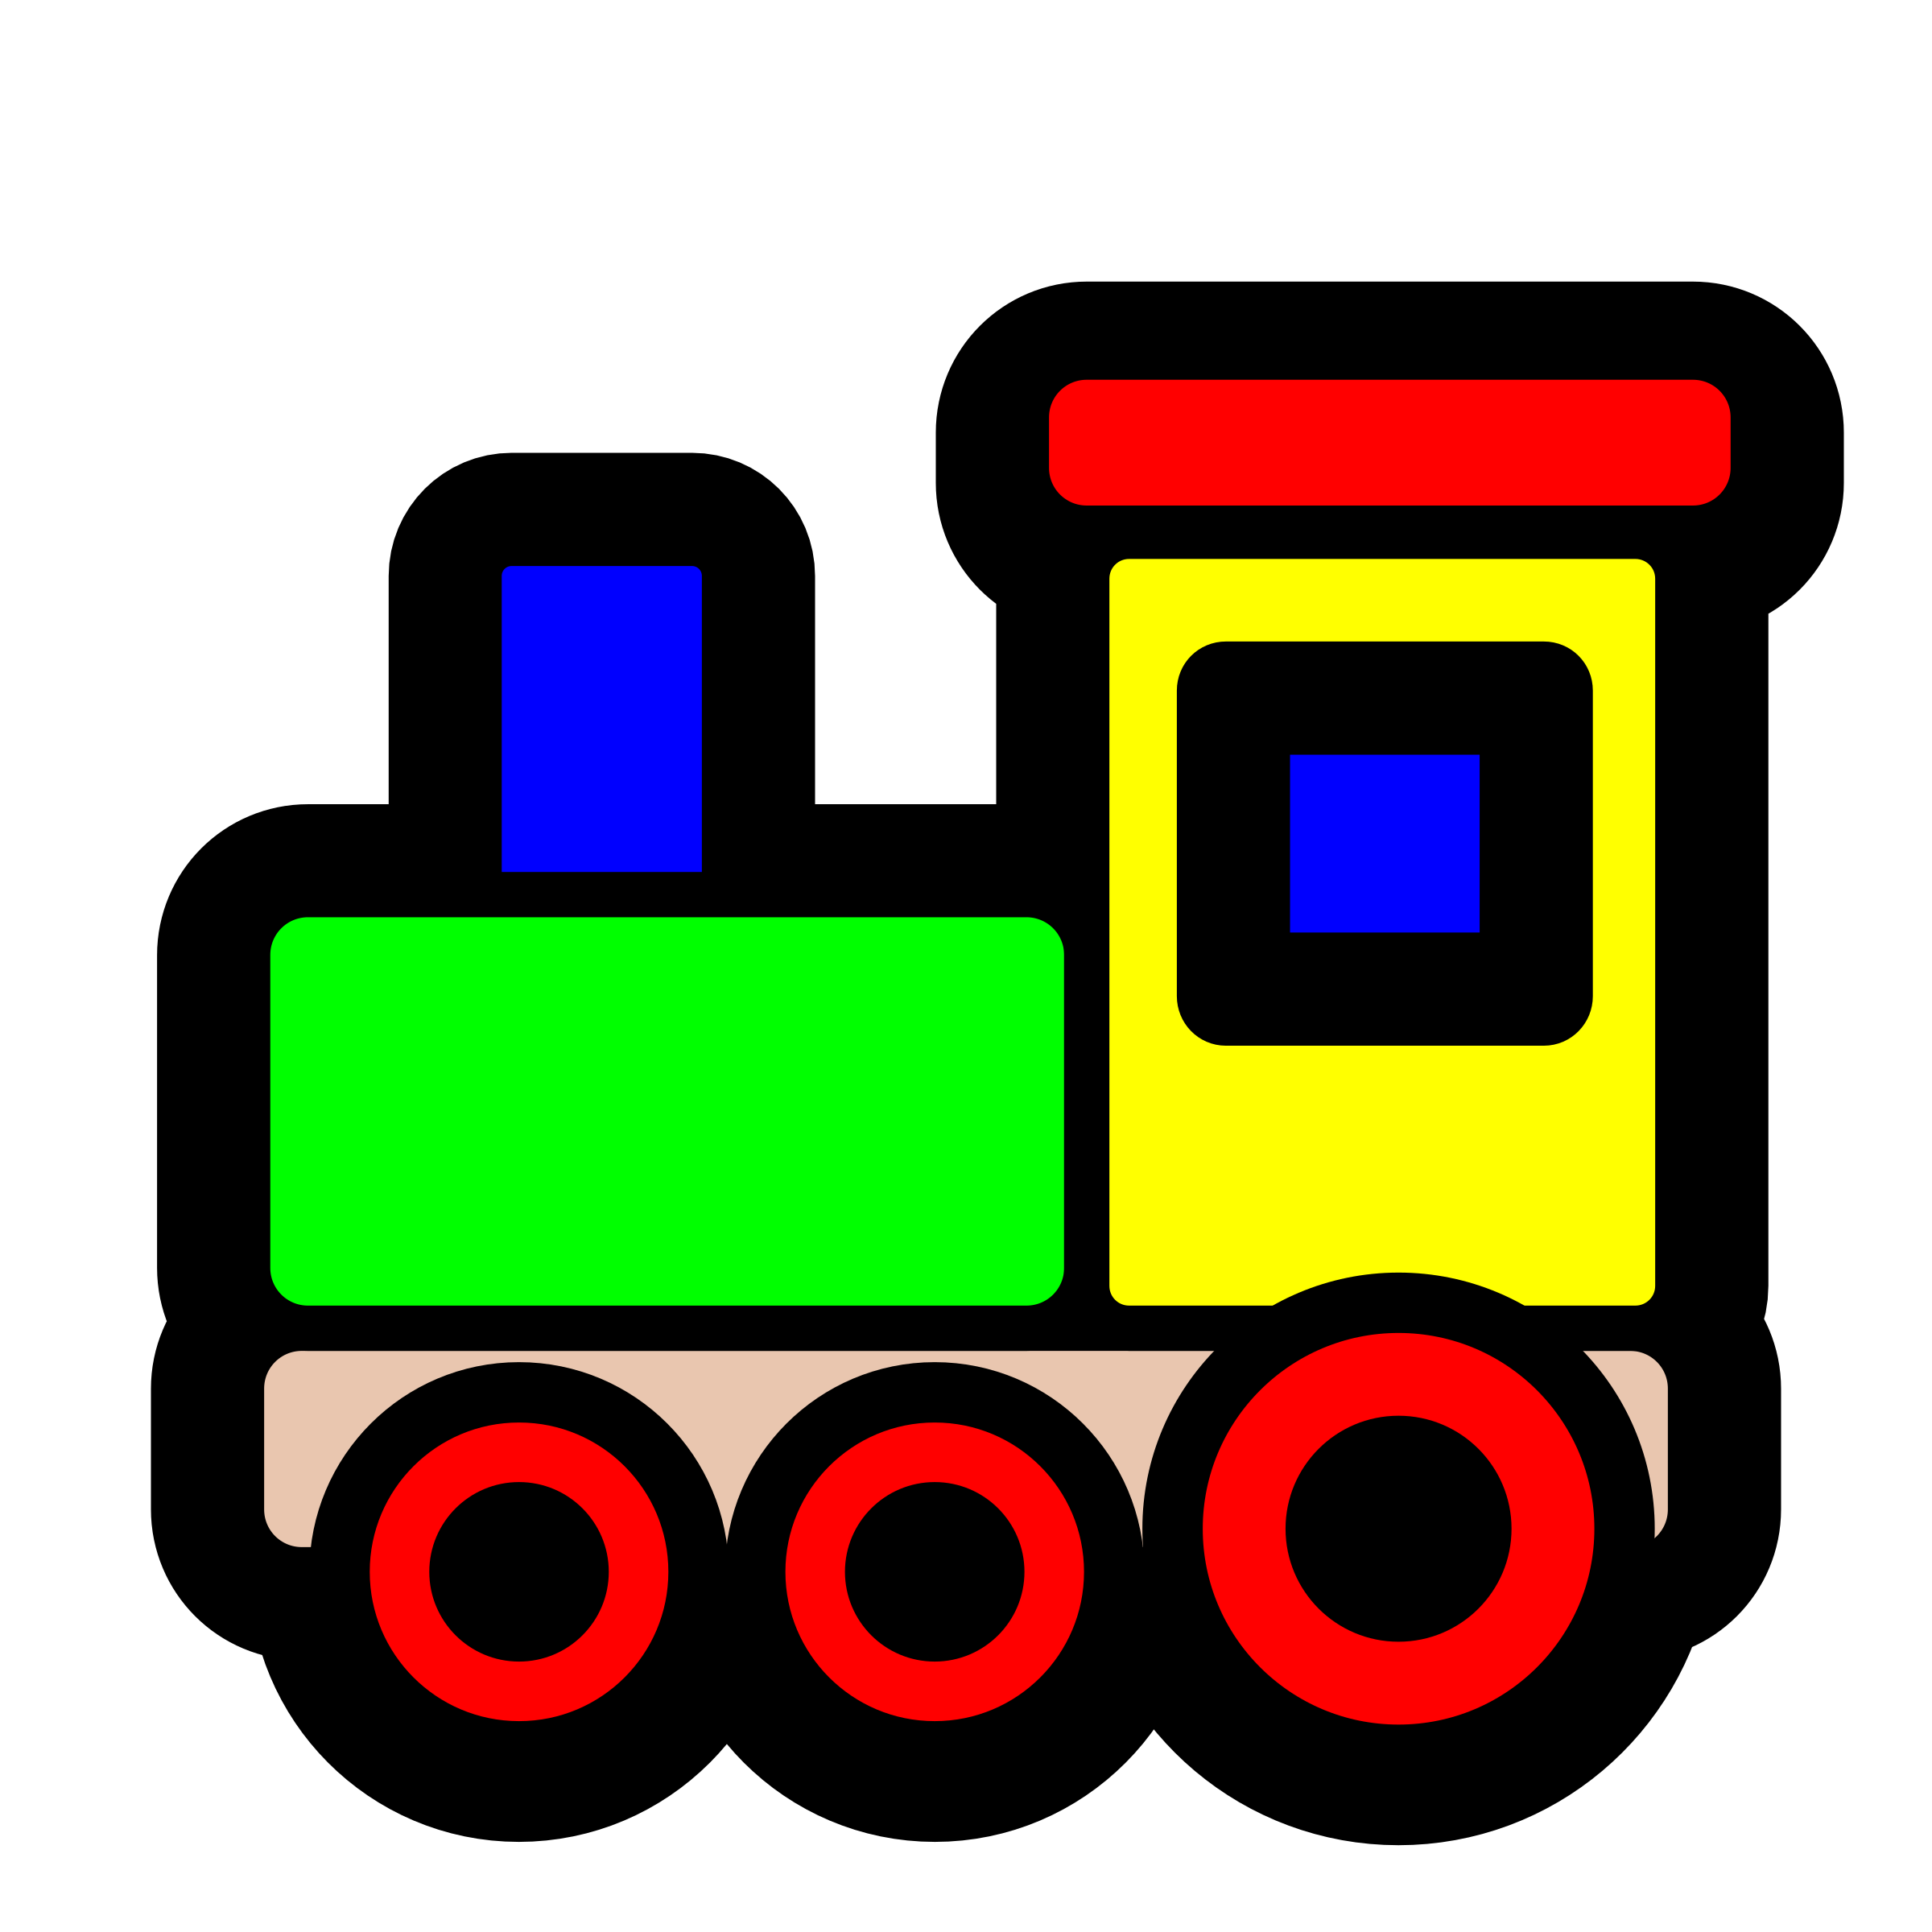 Toy trains free images. Engine clipart animated train